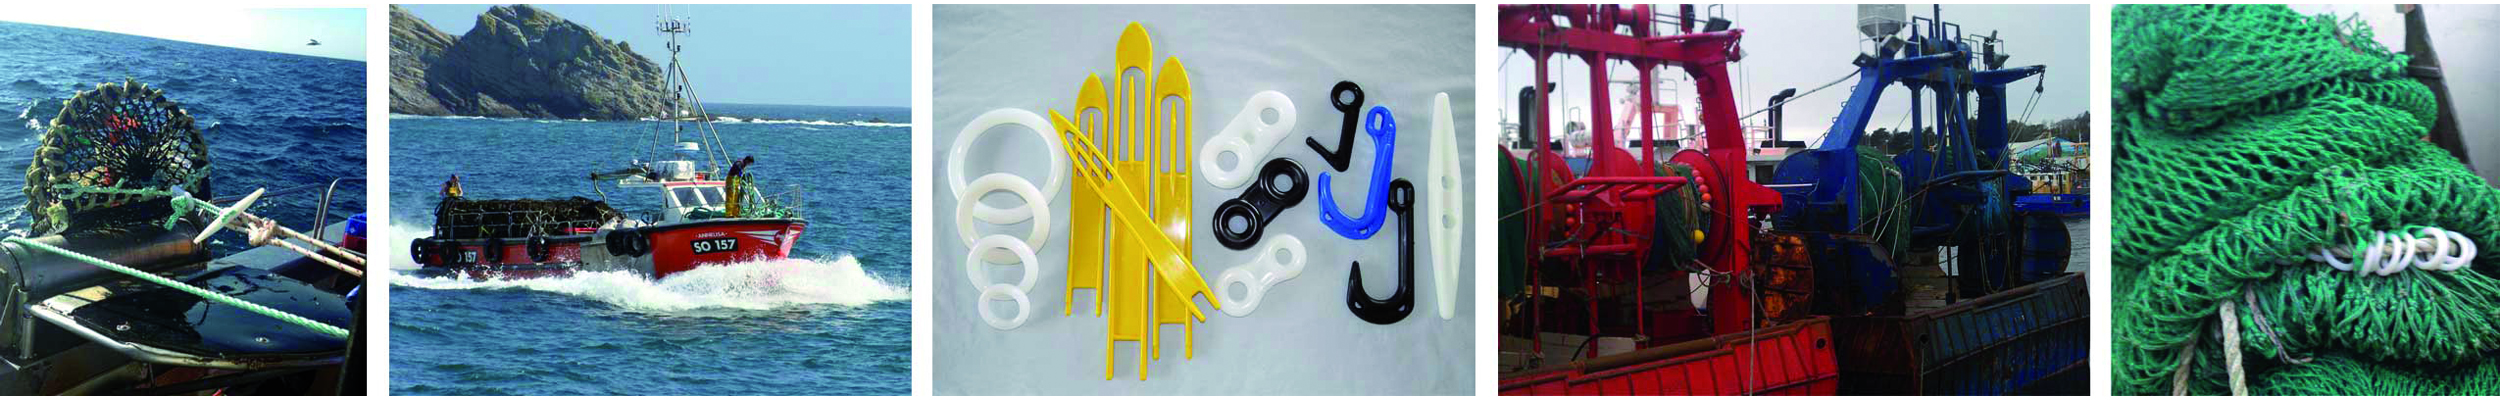 Commercial-Fishing-Accessories-page-top-med2